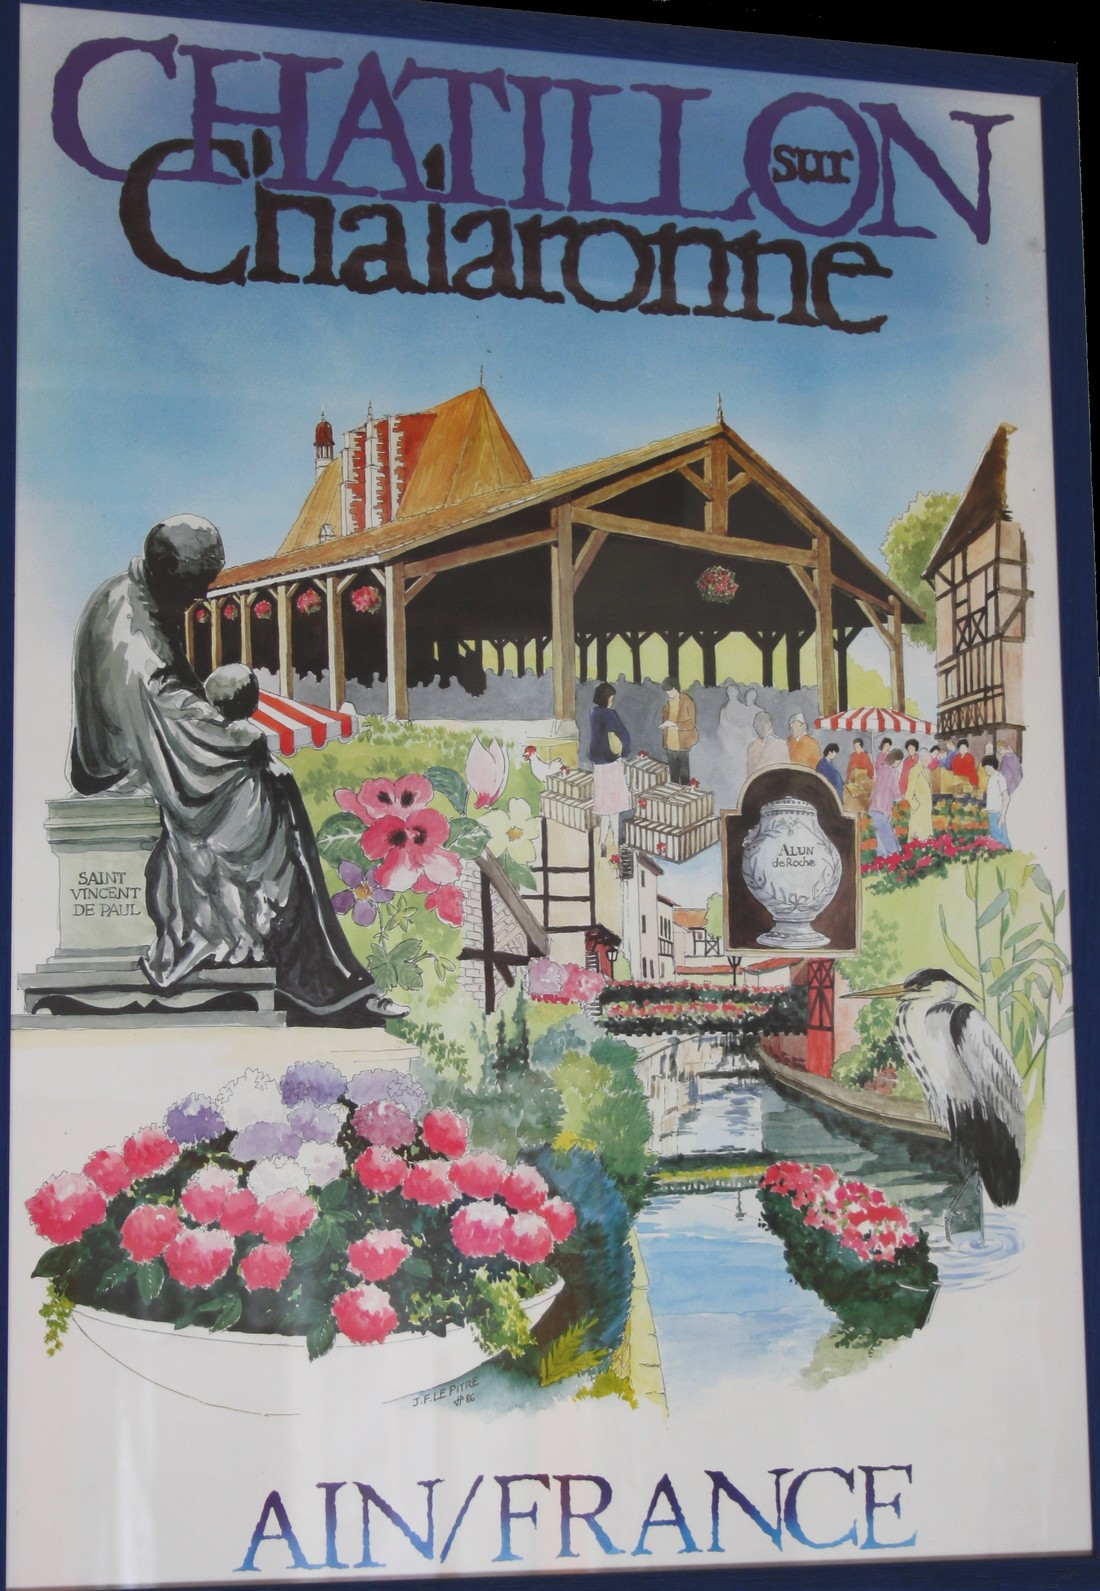 Chatillon-2014-Affiche